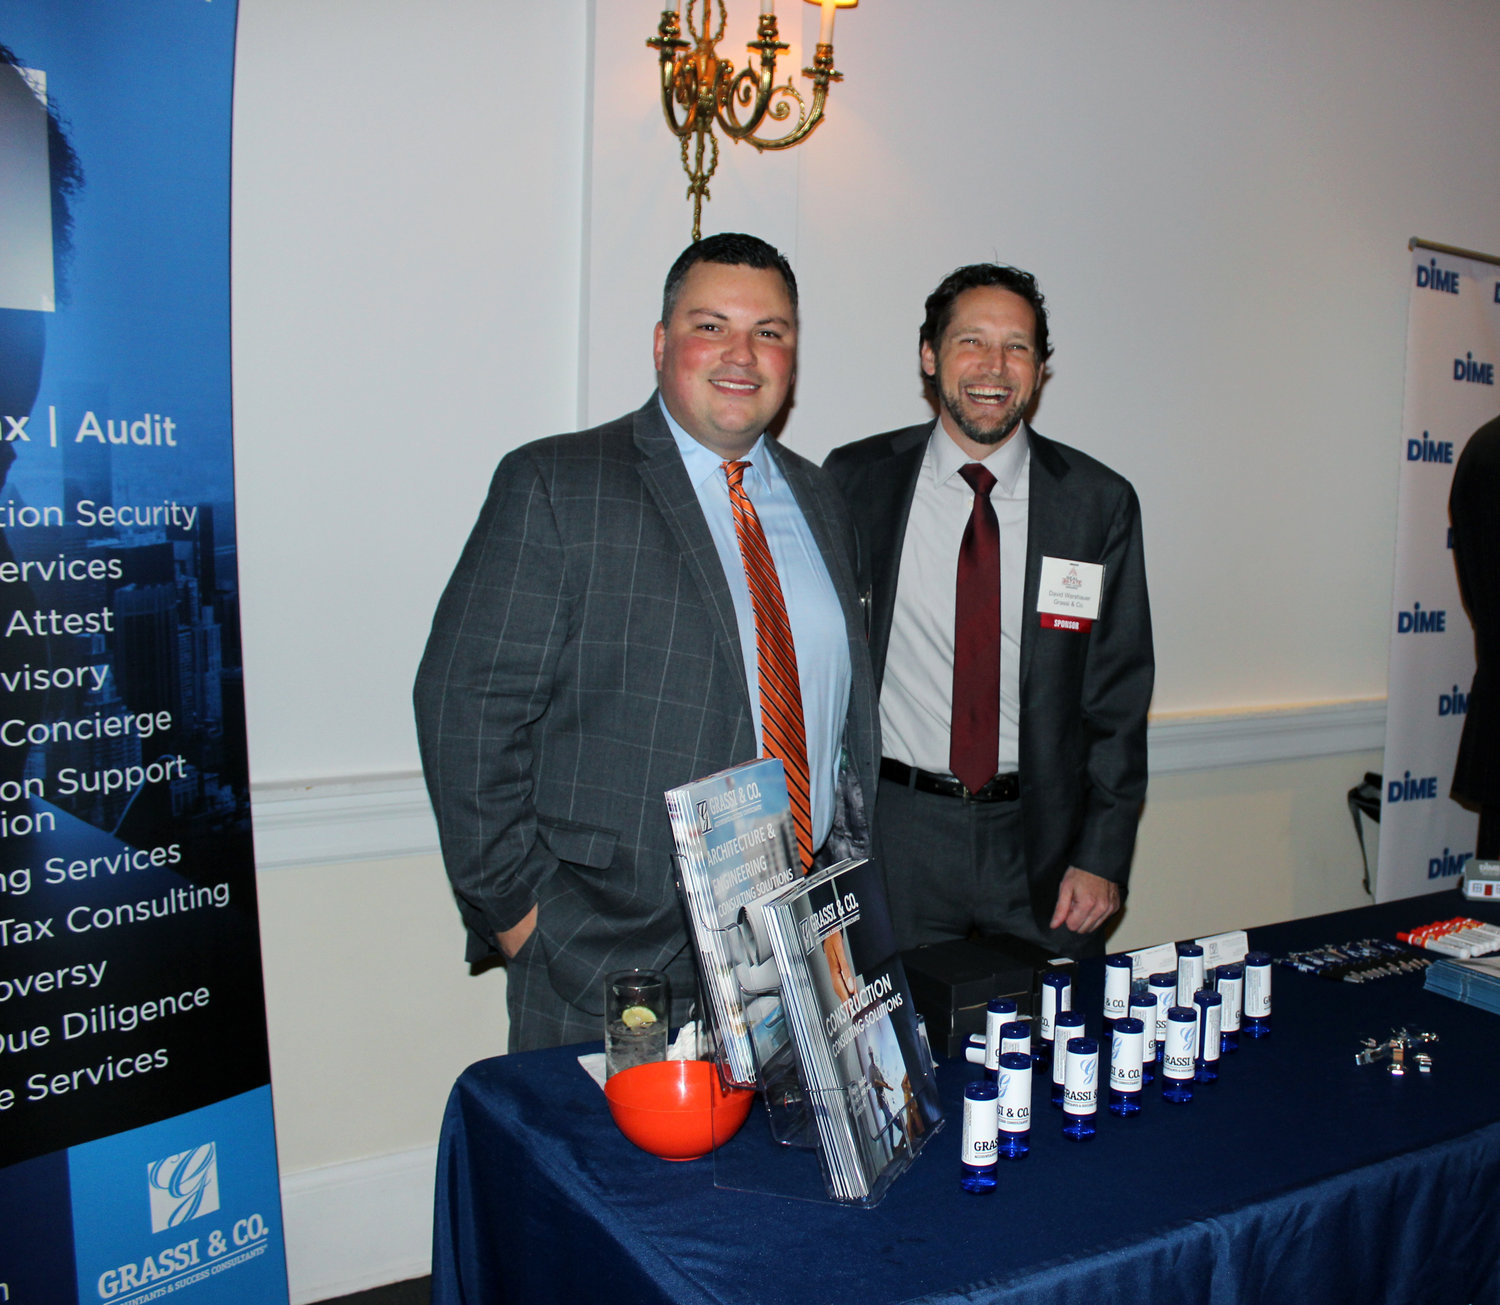 Grassi & Co. was at its second RichnerLIVE event as a sponsor, where Principal Aaron Rupper and partner David Warsheuer greeted honorees.